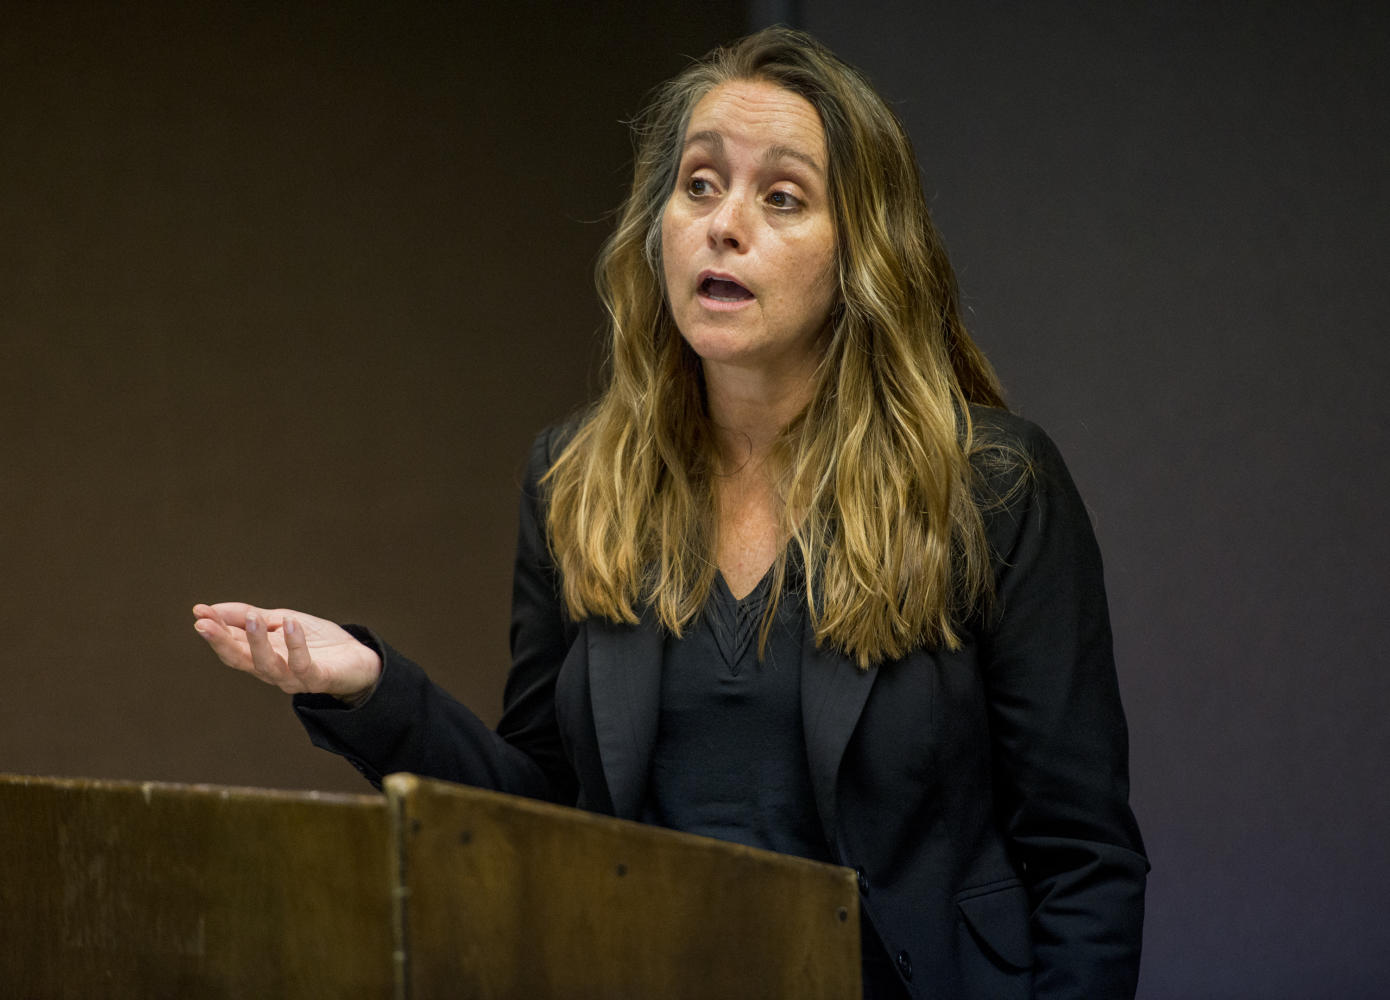 """Stacy McDermott makes her case in the Paul Simon institute director search Monday, Oct. 2, 2017, in the Illinois room of the Student Center. """"I want to share with others the power of positive inspiration,"""" McDermott said. (Auston Mahan 